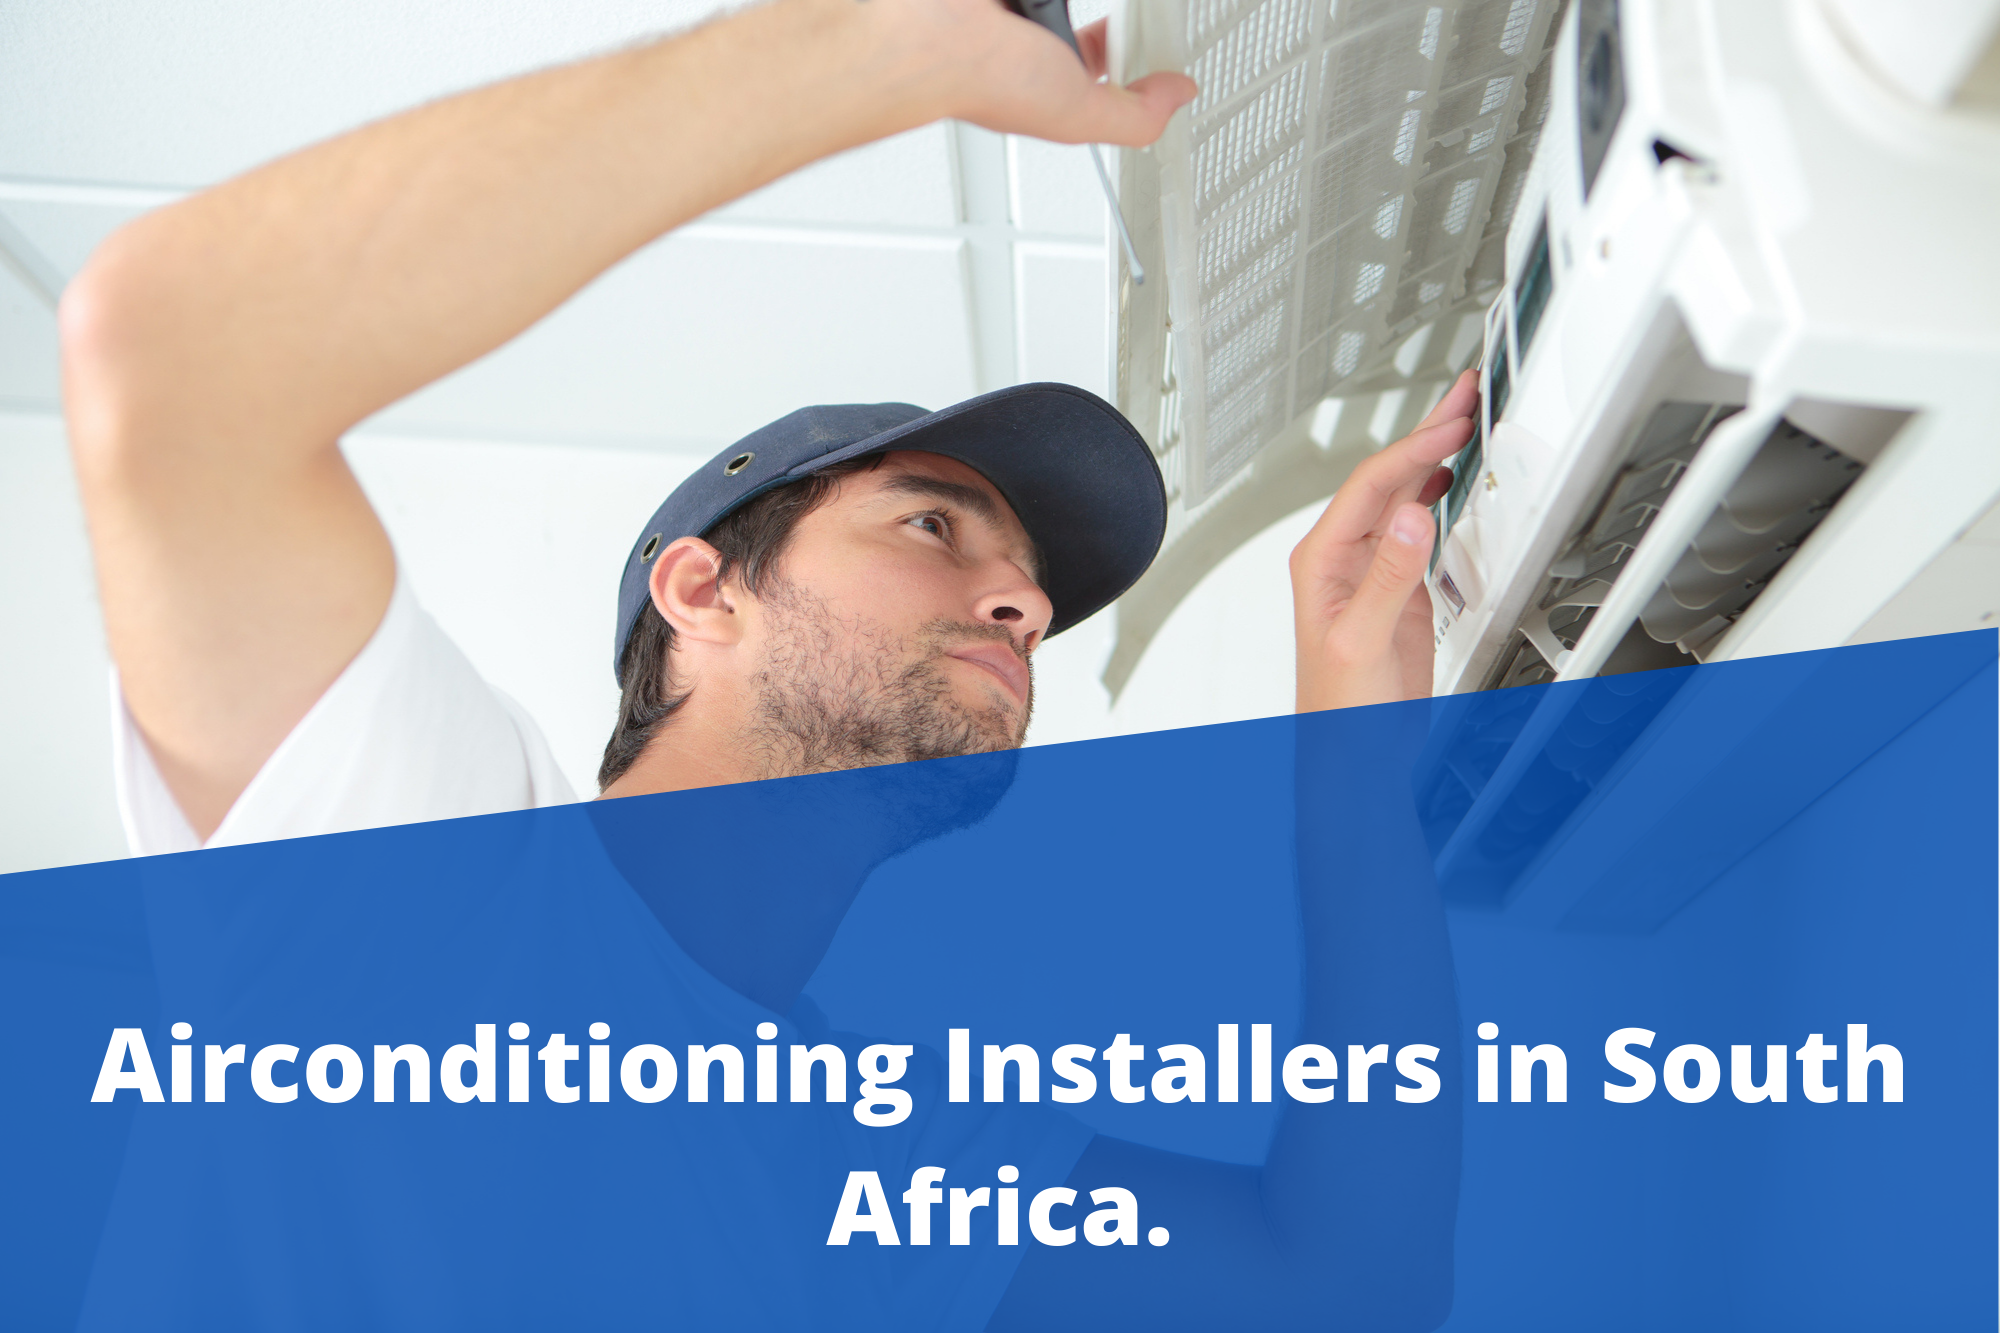 Airconditioning Installers in South Africa